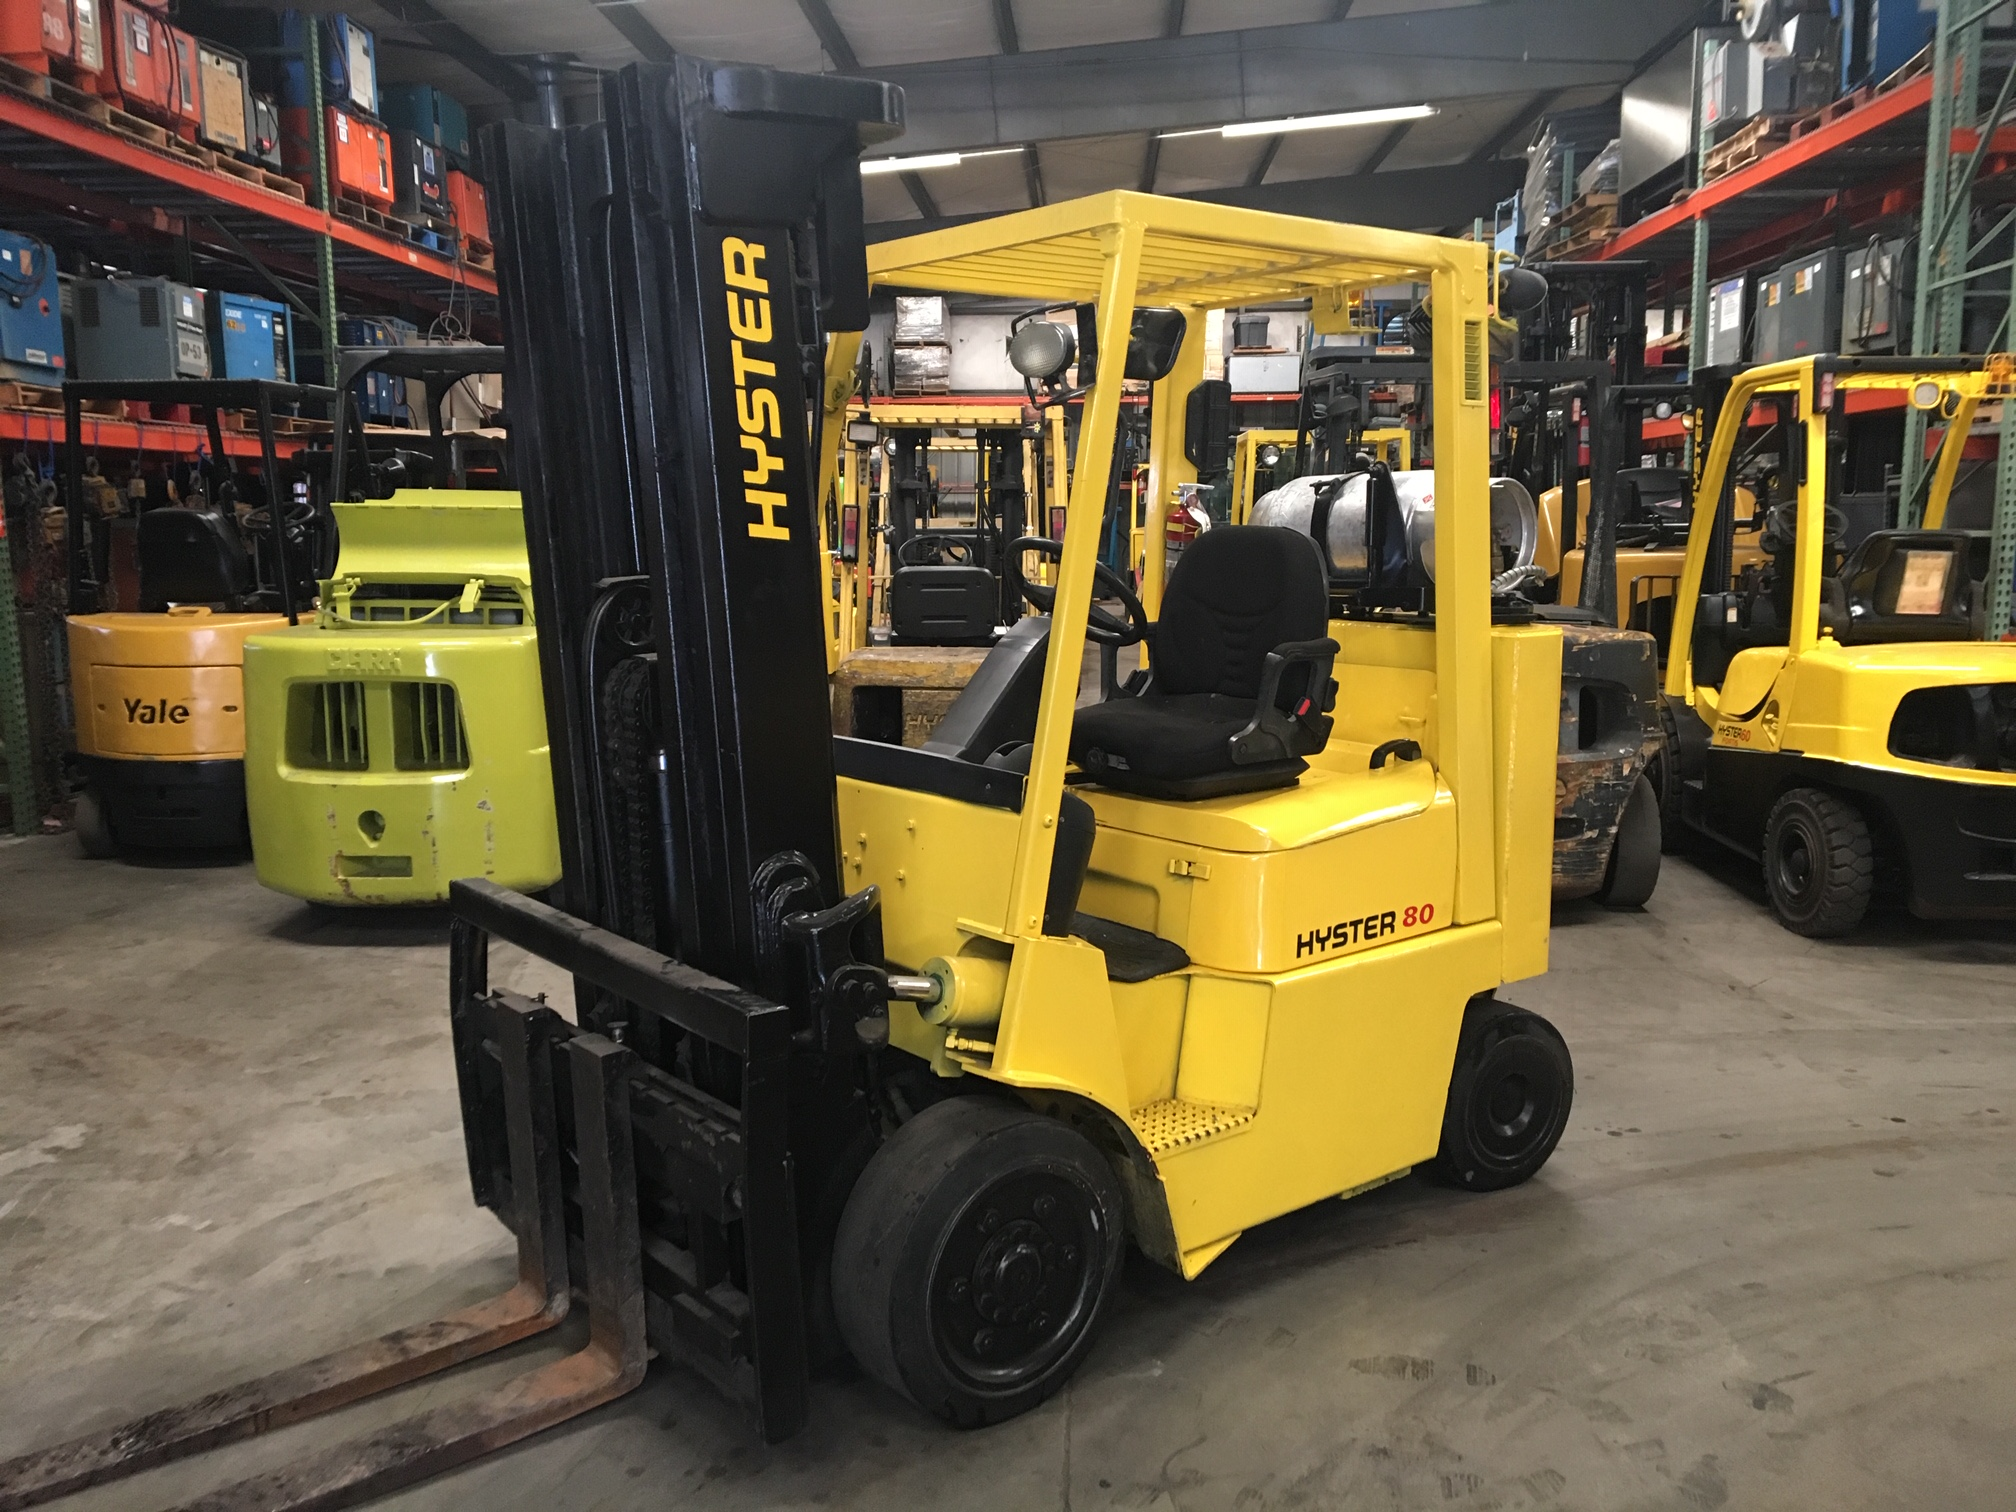 8000lb hyster forklify three stage mast side shifting forks